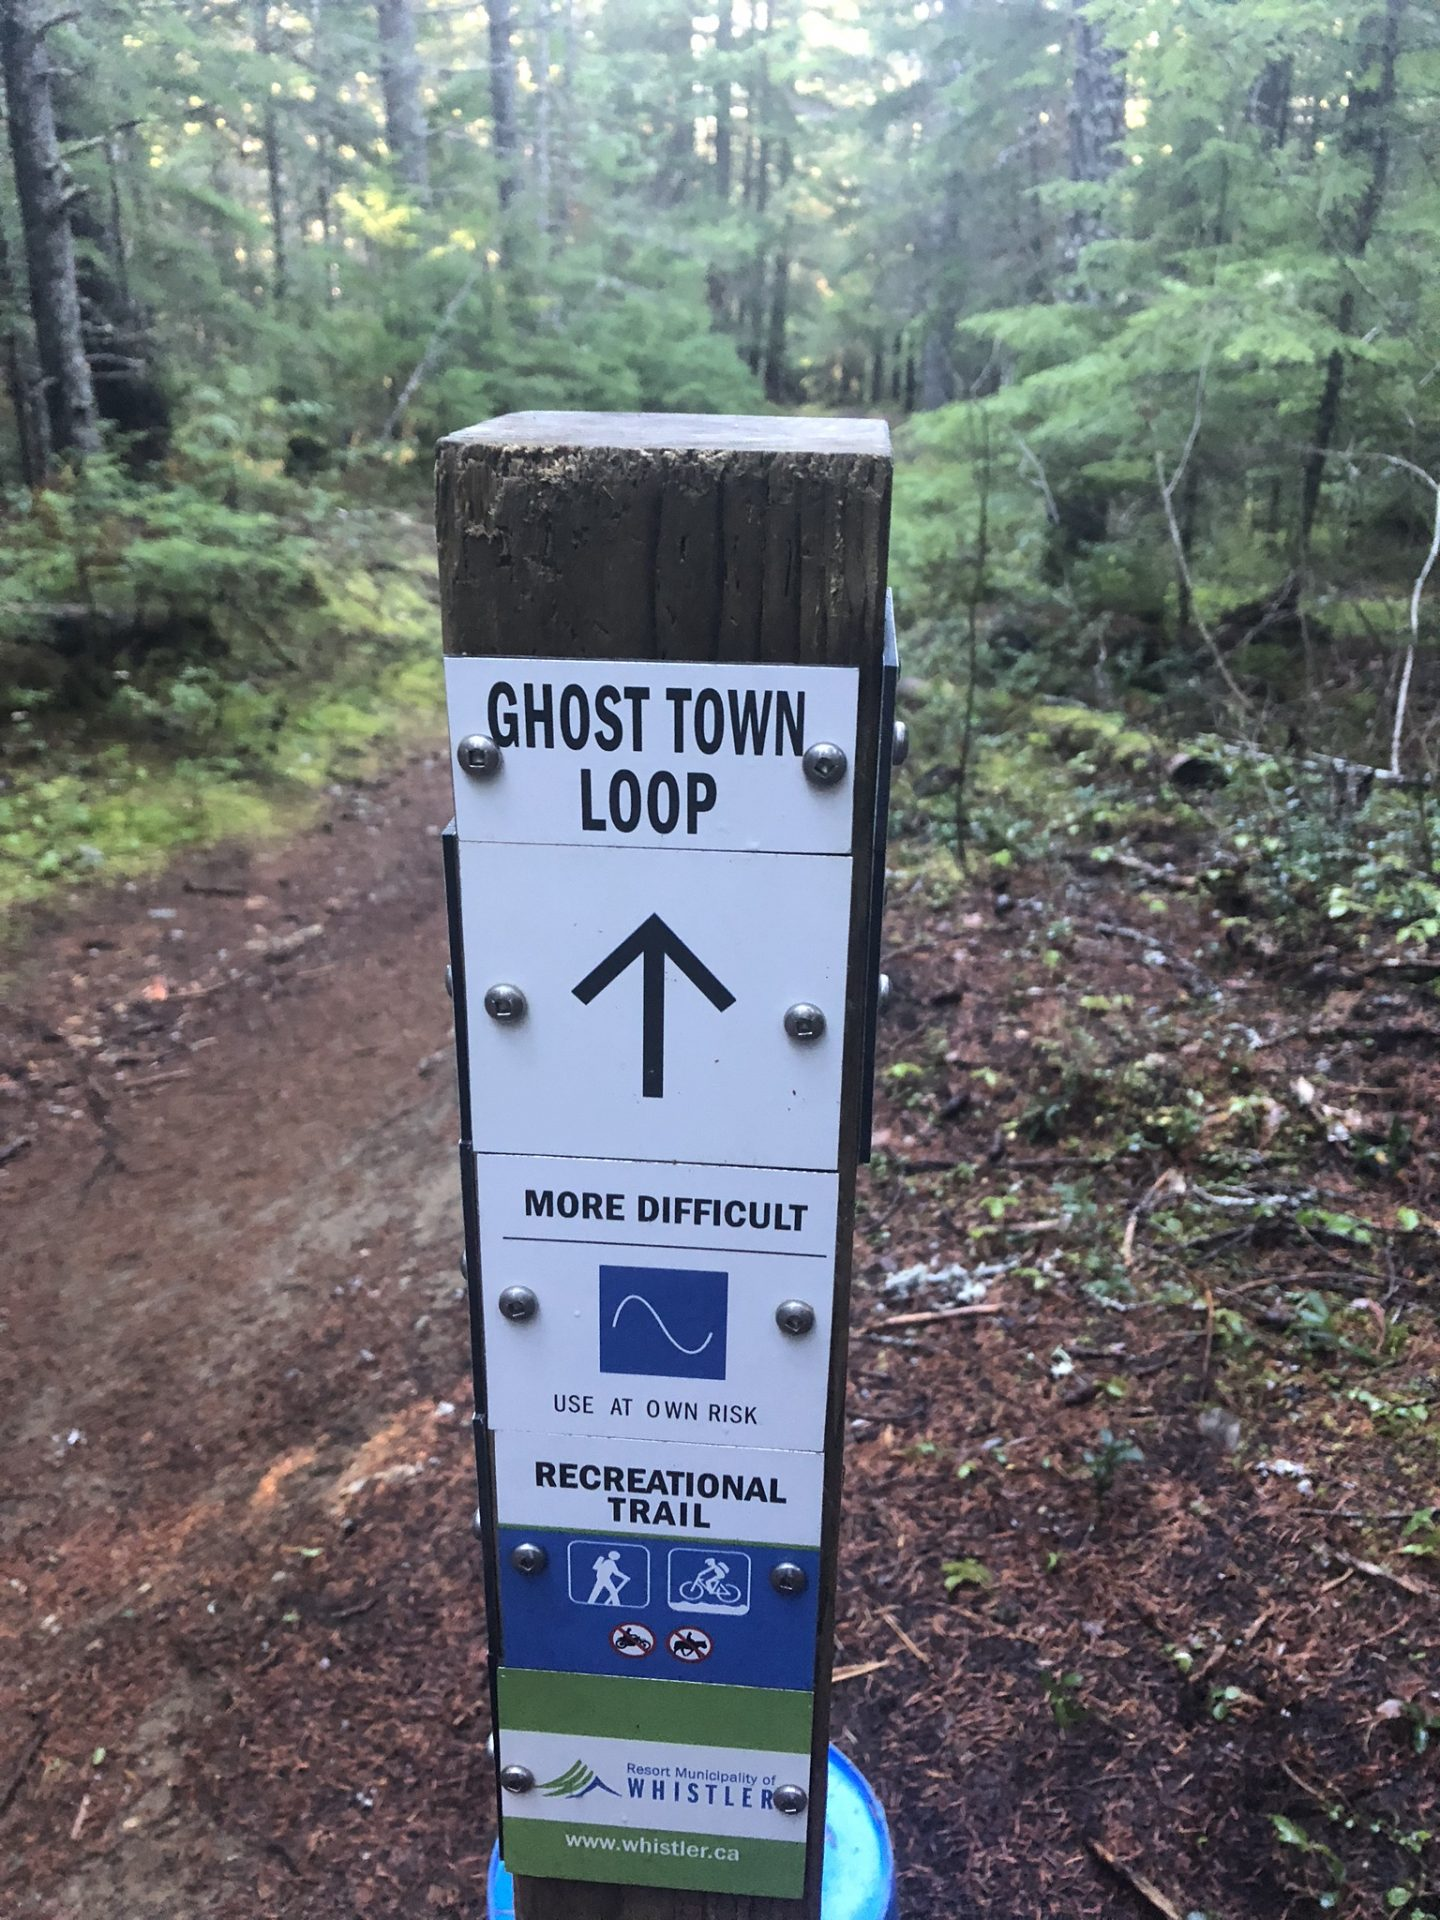 A ghost town loop at Parkhurt near Whistler, British Columbia